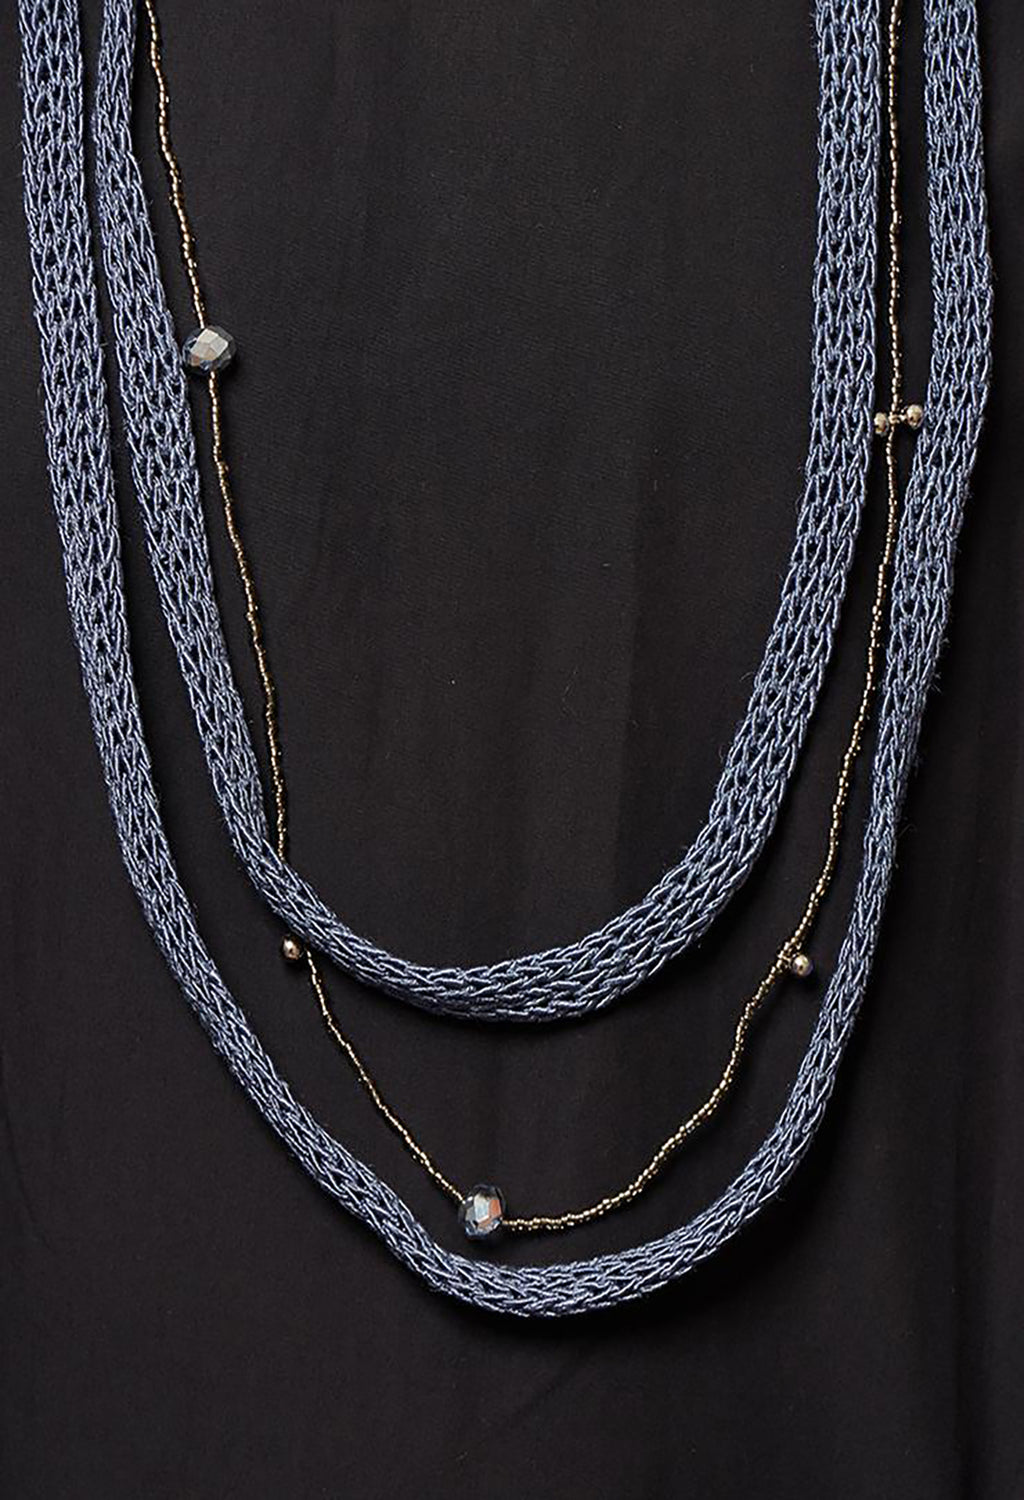 Knitted Necklace with Beads in Blue